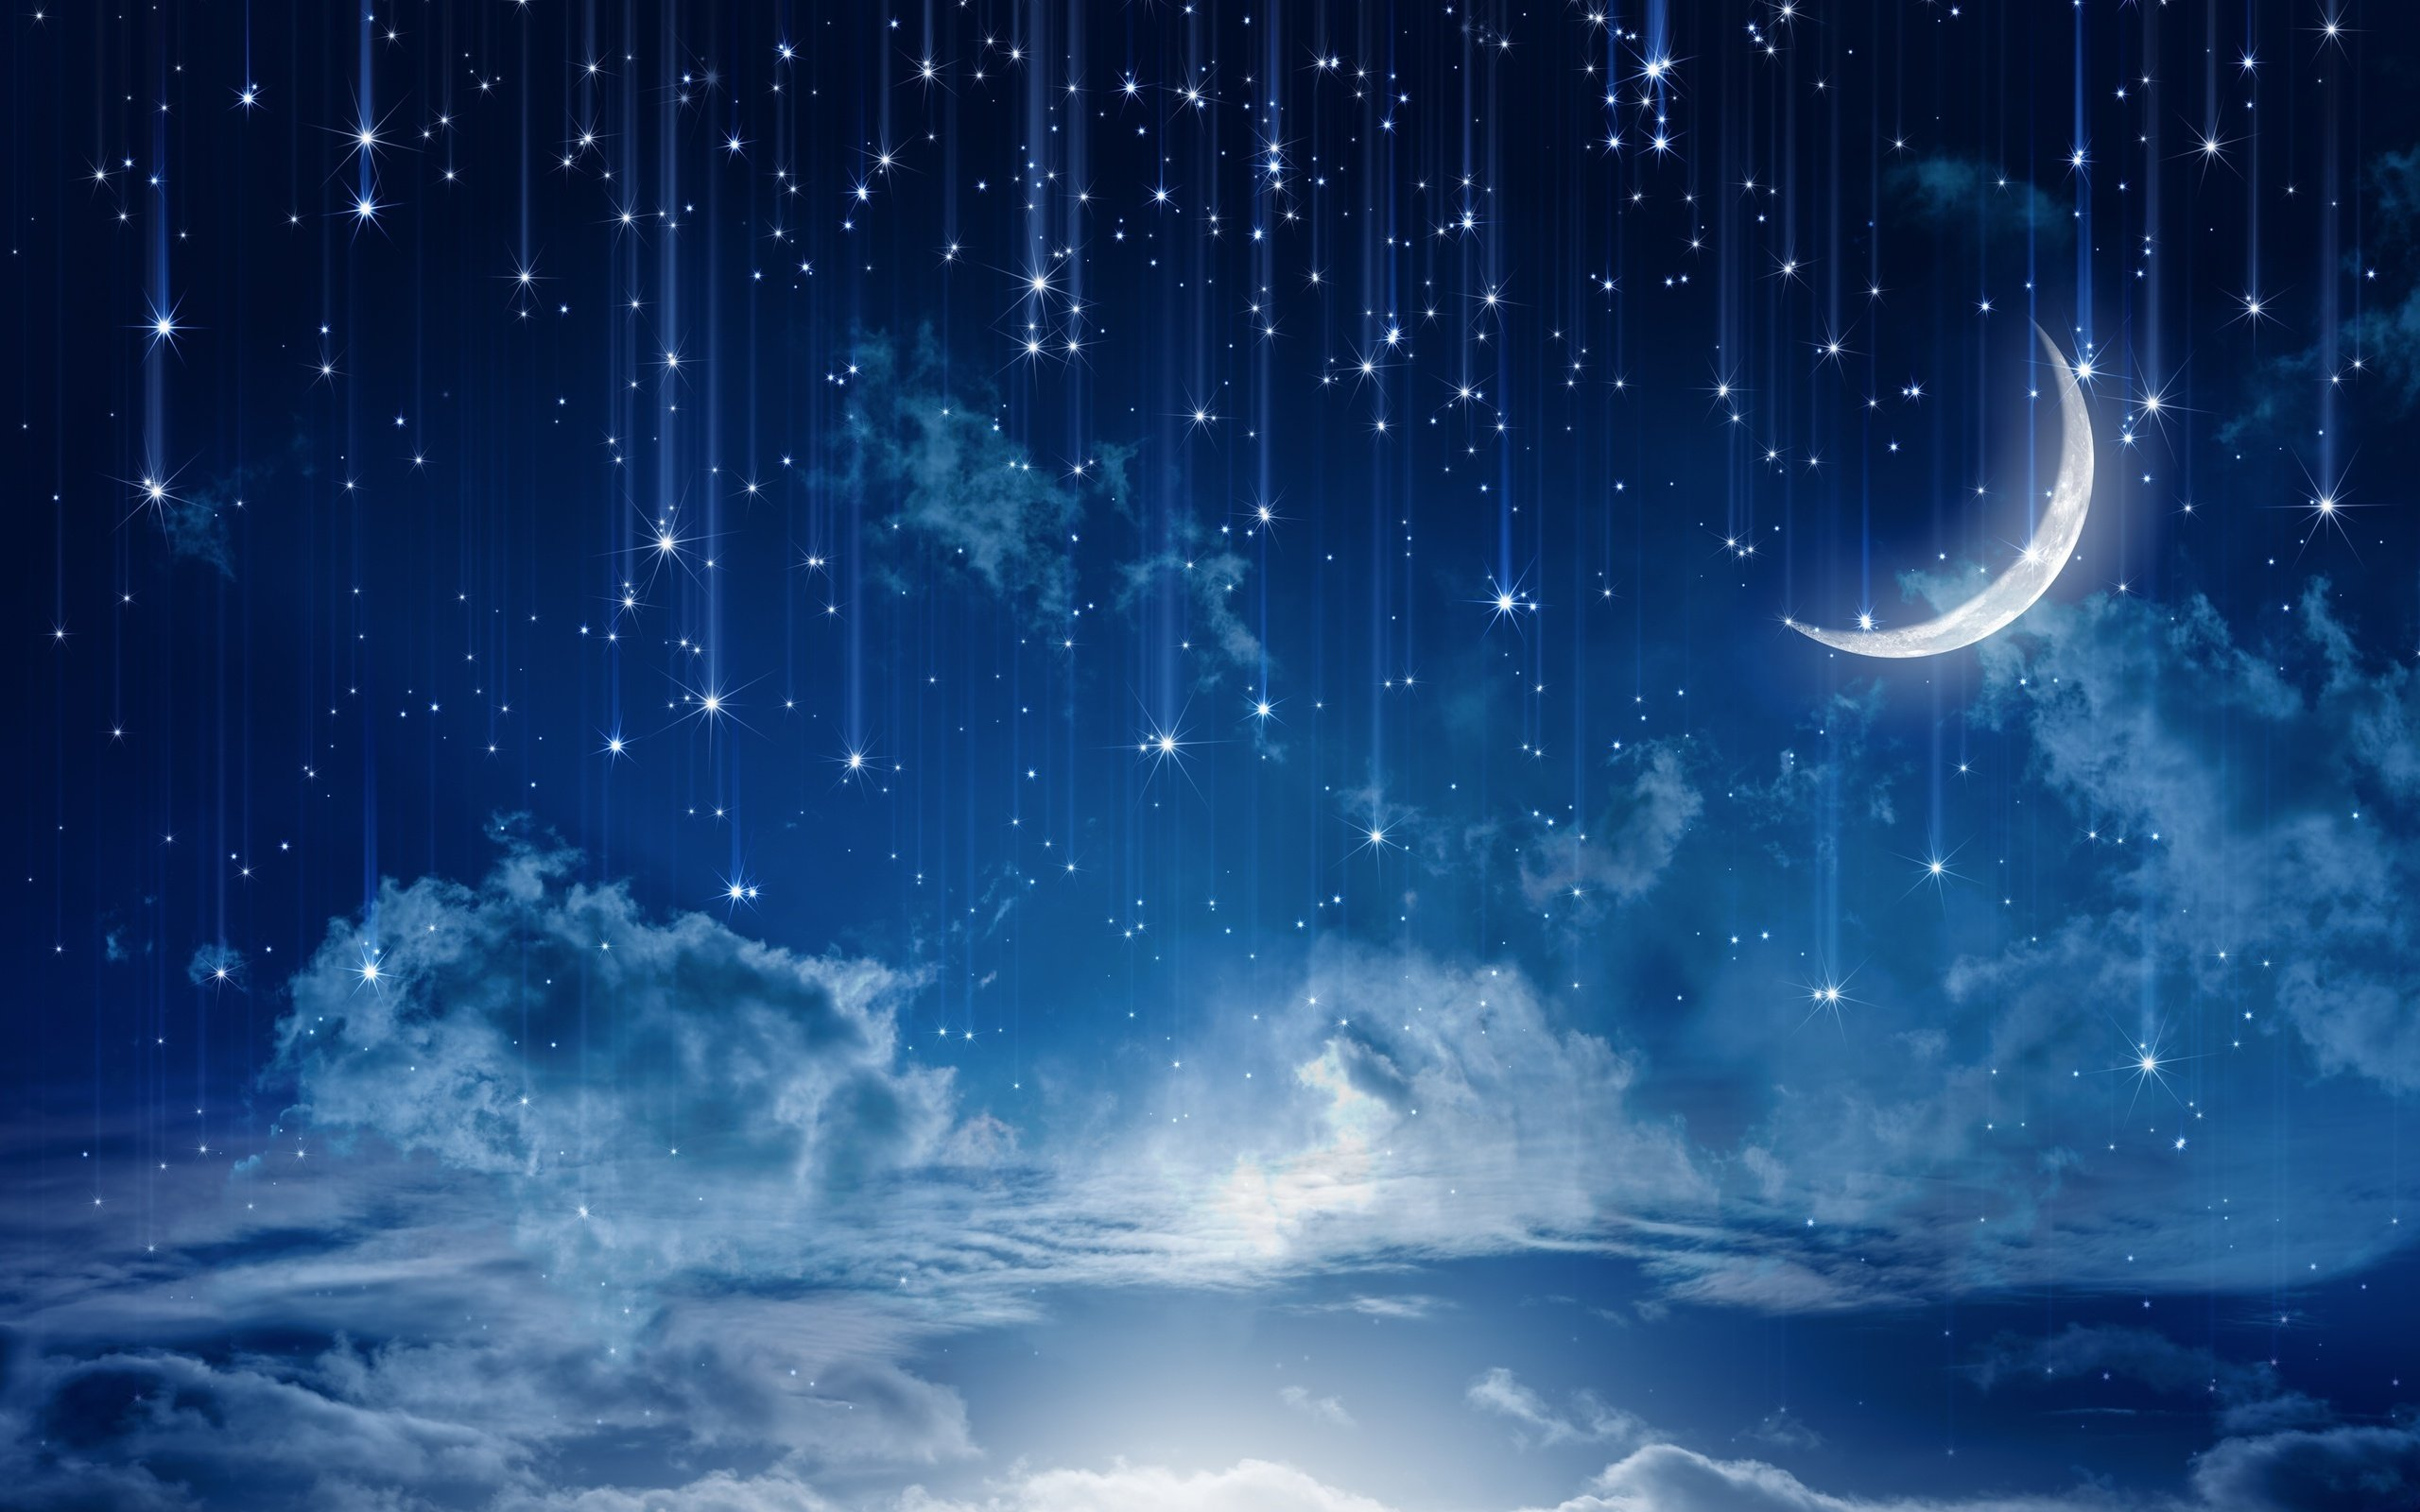 nature night stars clouds rain landscape moon wallpaper background 2560x1600